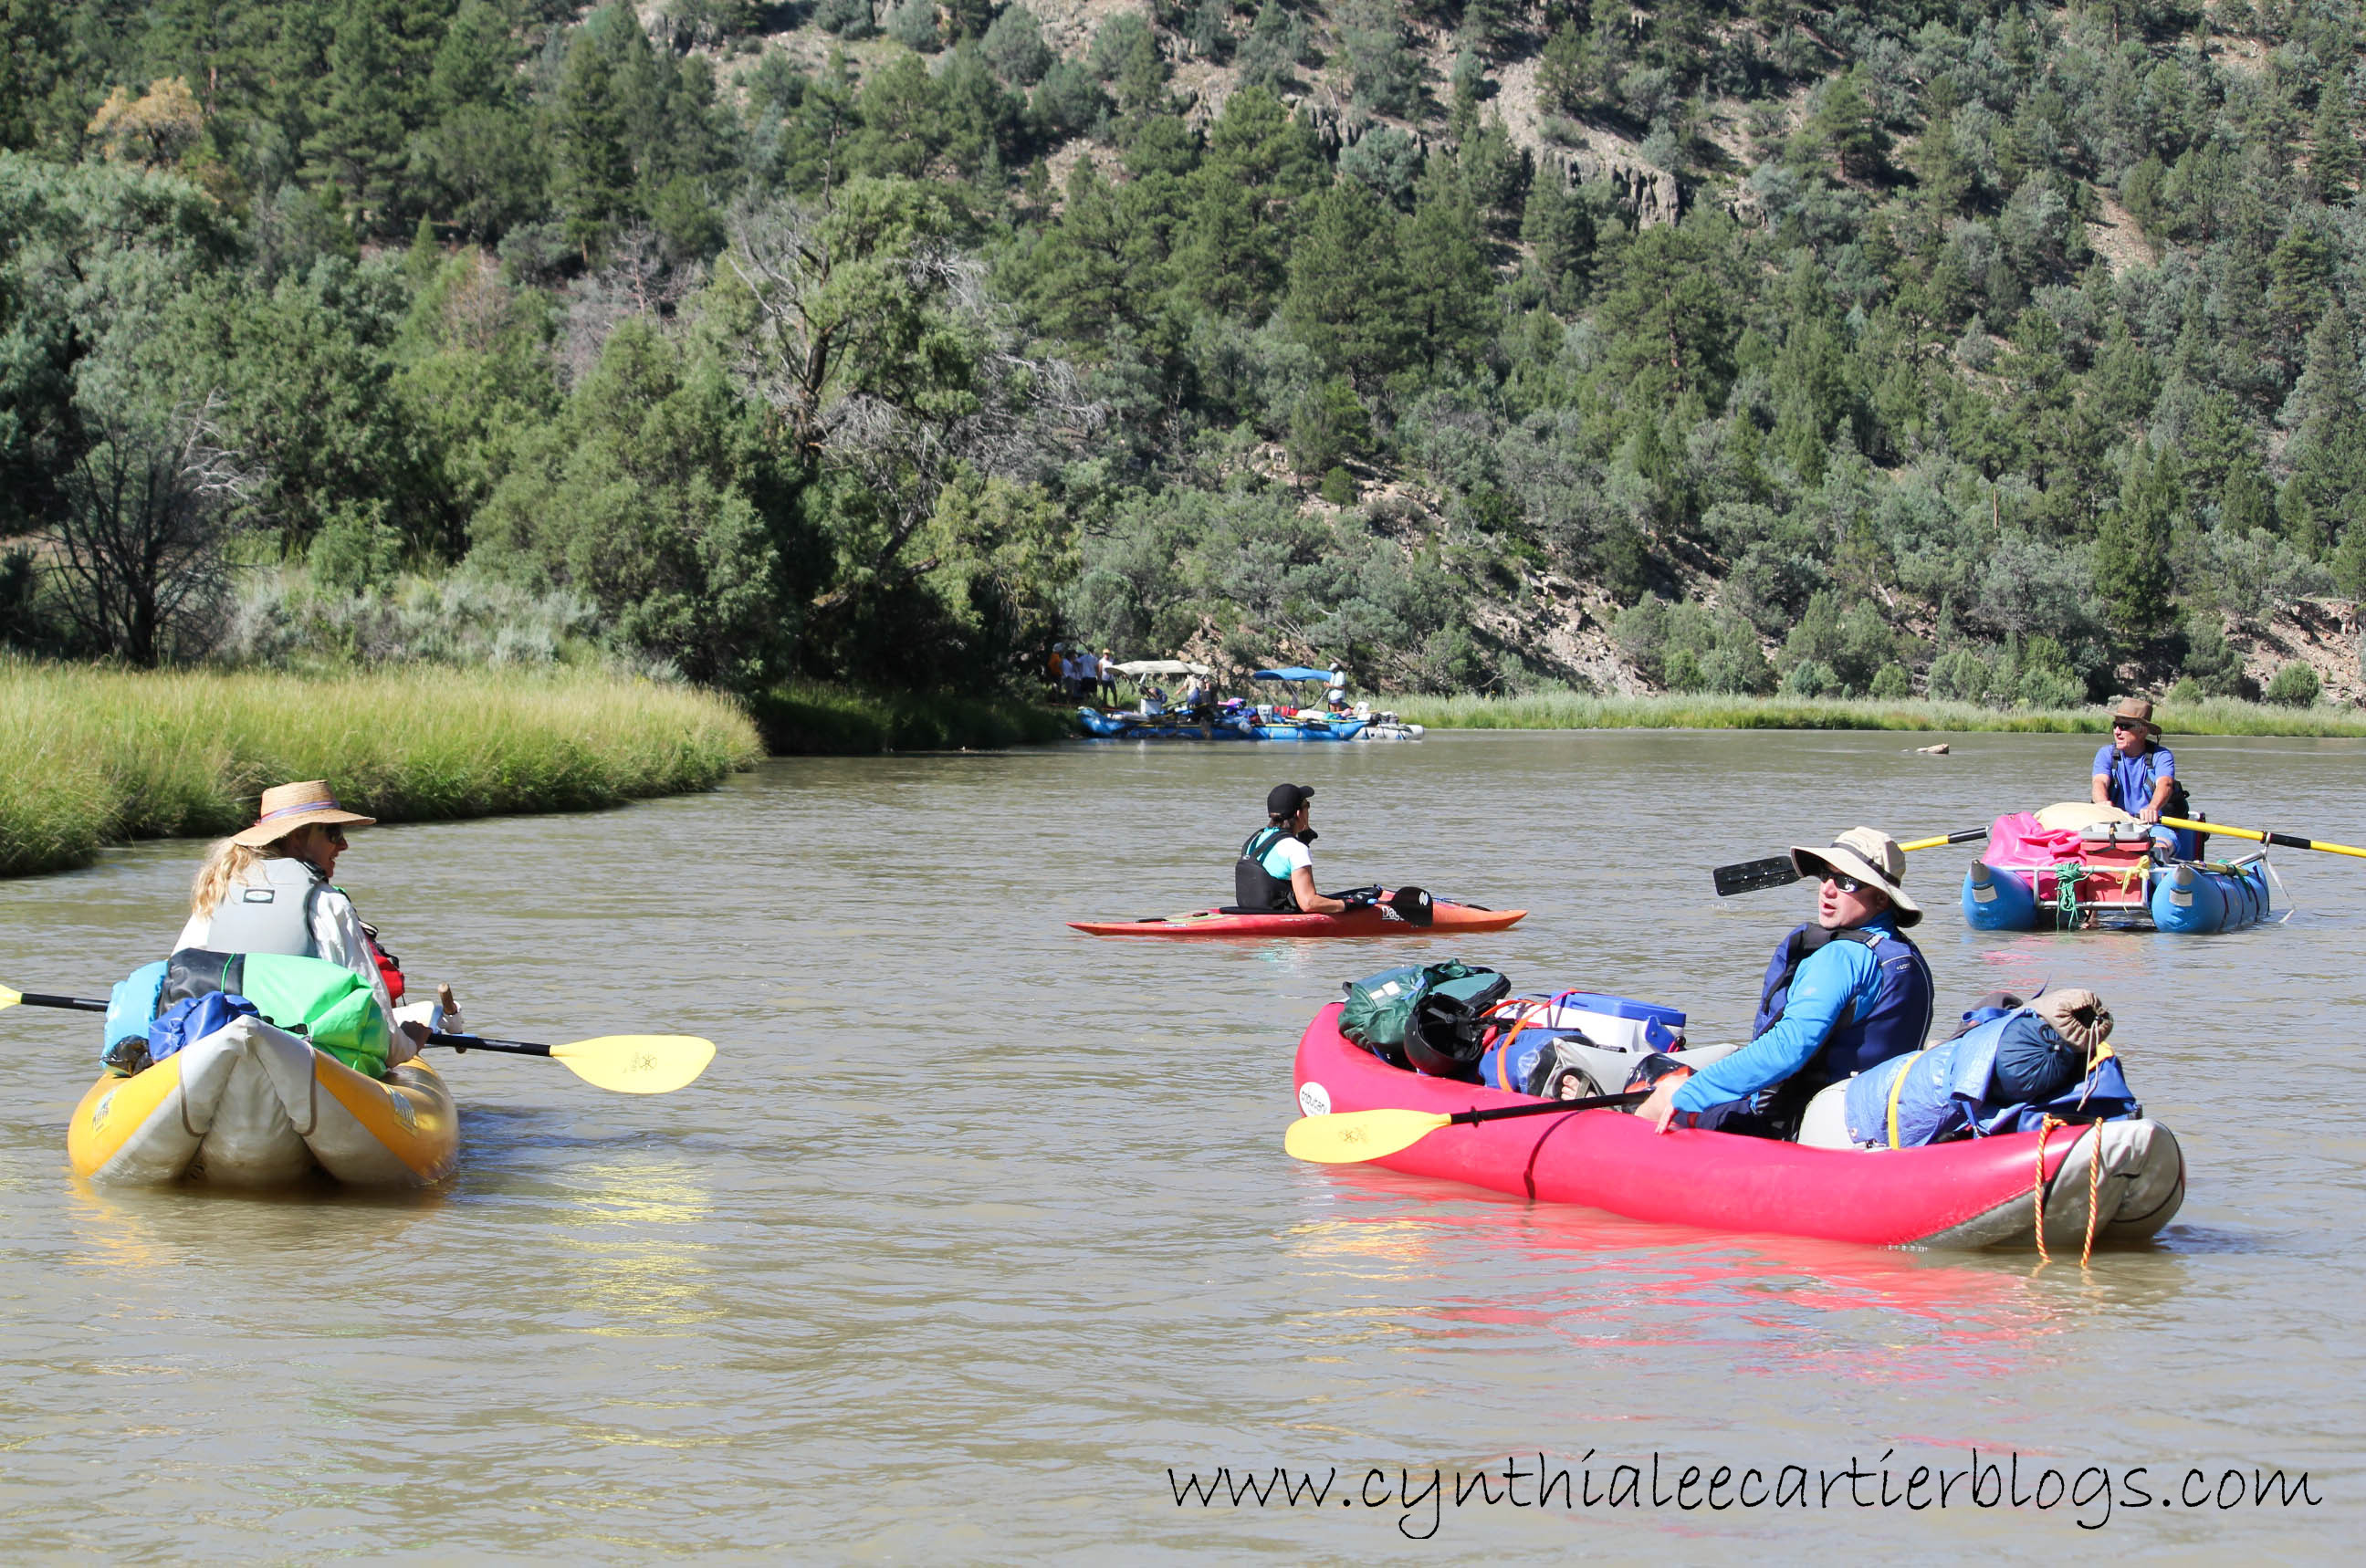 A variety of different kinds of boats on the Rio Chama River